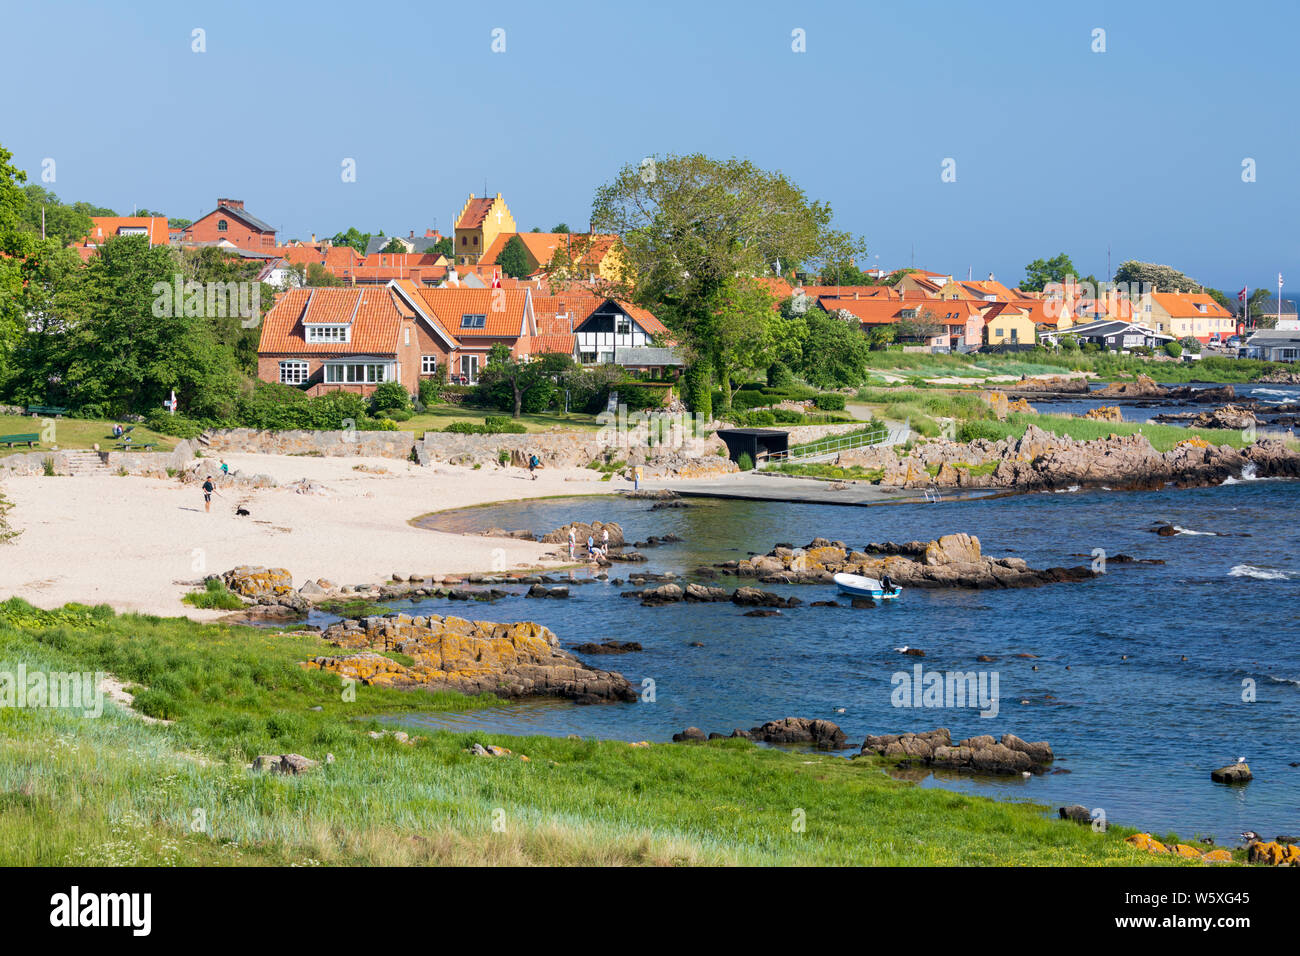 View over white sand beach of Naes Strand on sunny morning, Allinge, Bornholm Island, Baltic sea, Denmark, Europe Stock Photo